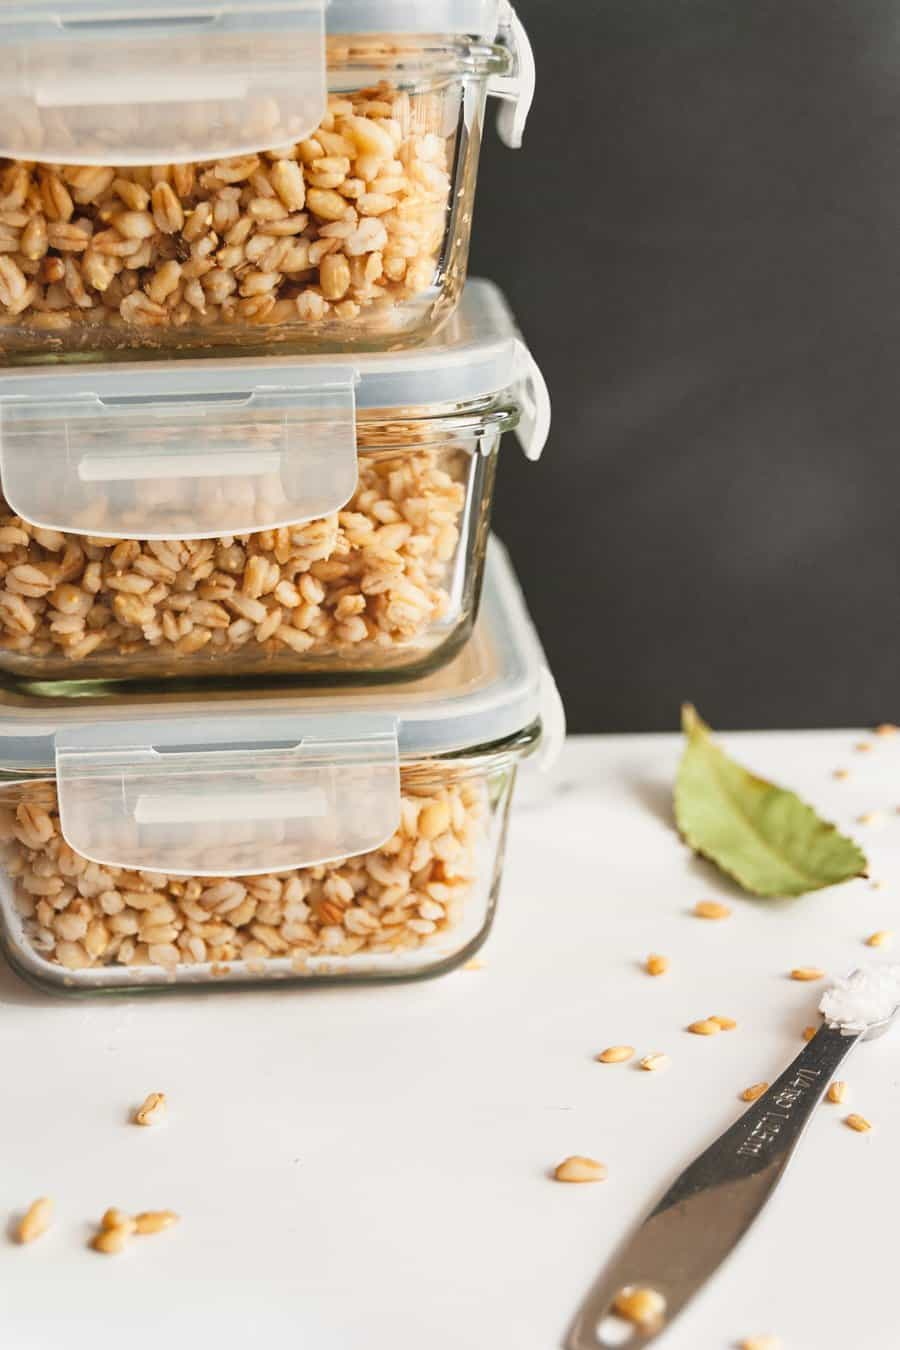 Instant Pot Barley packed into 3 meal prep containers and stacked